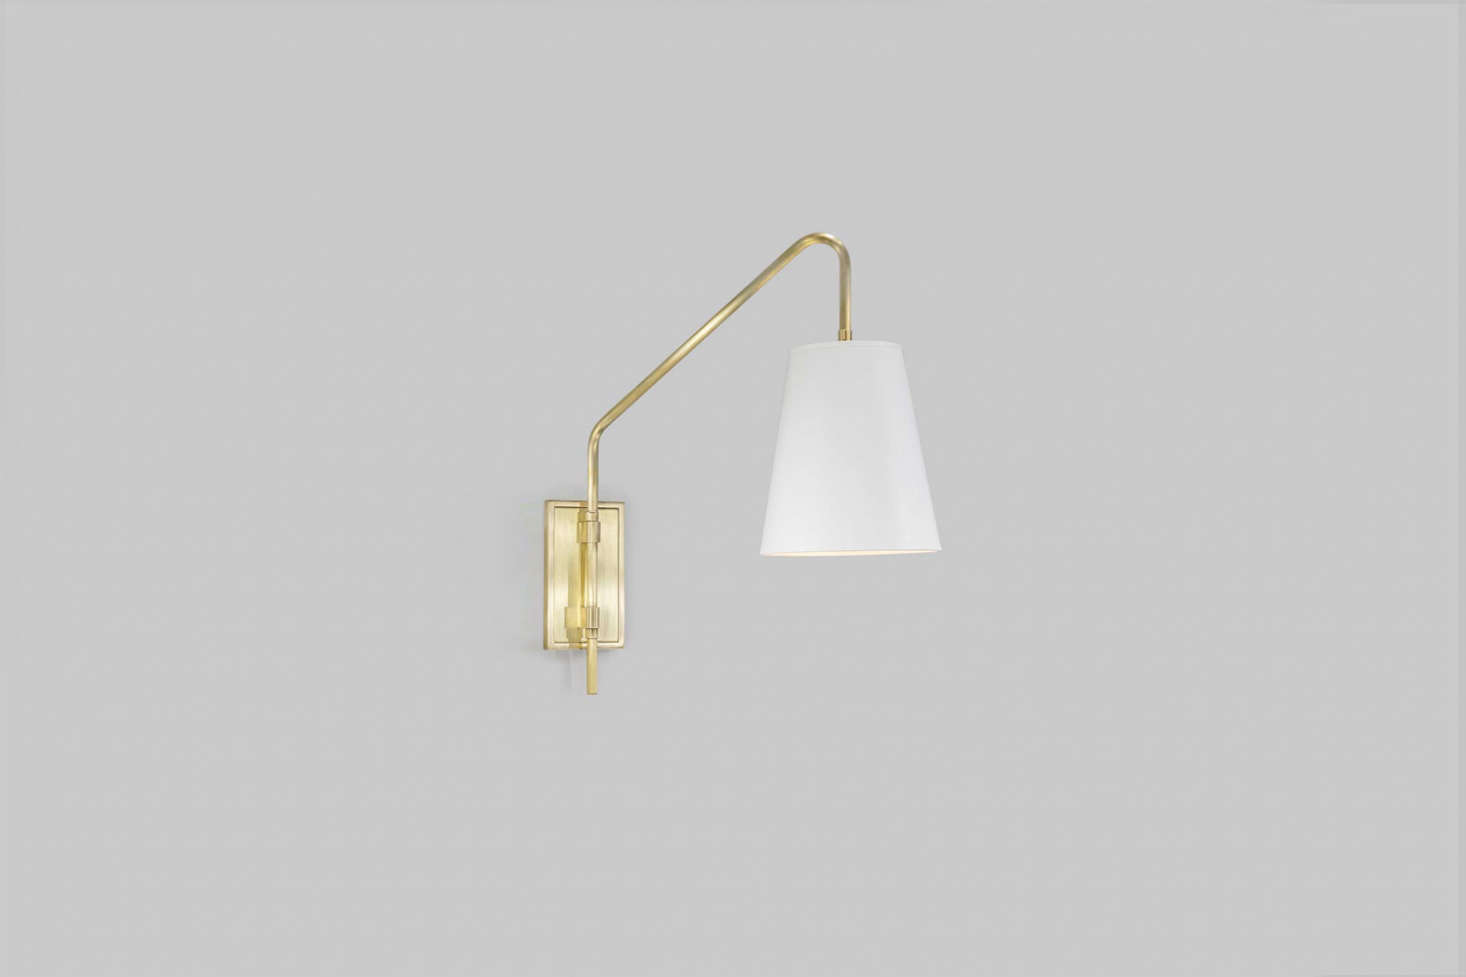 A similar light to the custom fixture by Urban Electric Co. above the bathroom console is their Audley Sconcein Antique Brass. Contact Urban Electric Co. for more information.